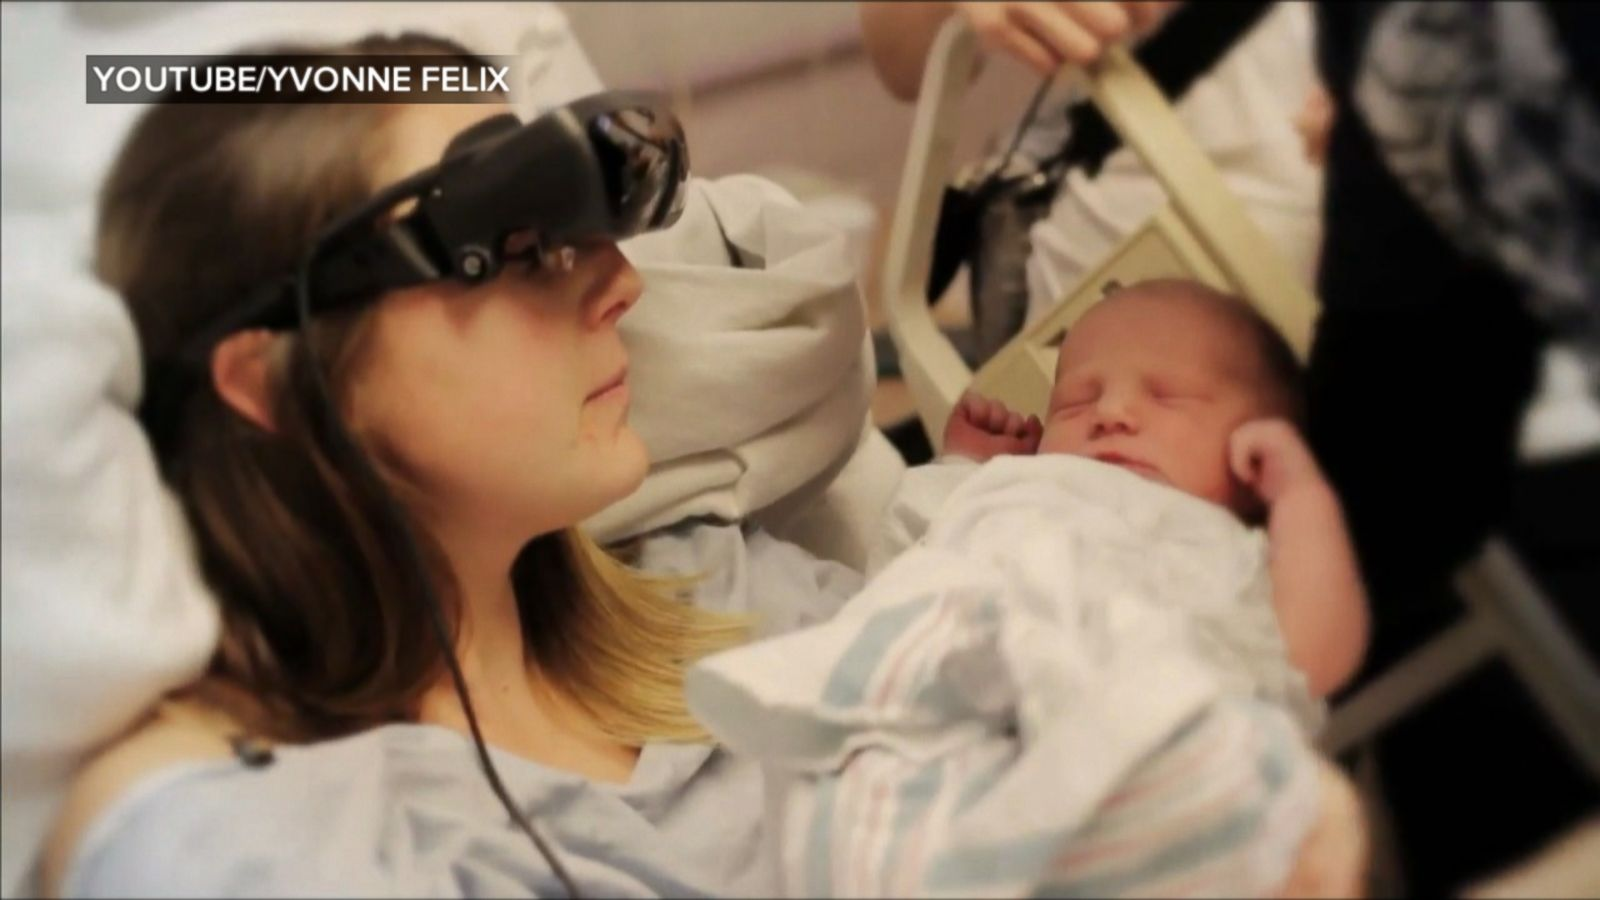 Blind Mom-To-Be Sees Baby For The First Time